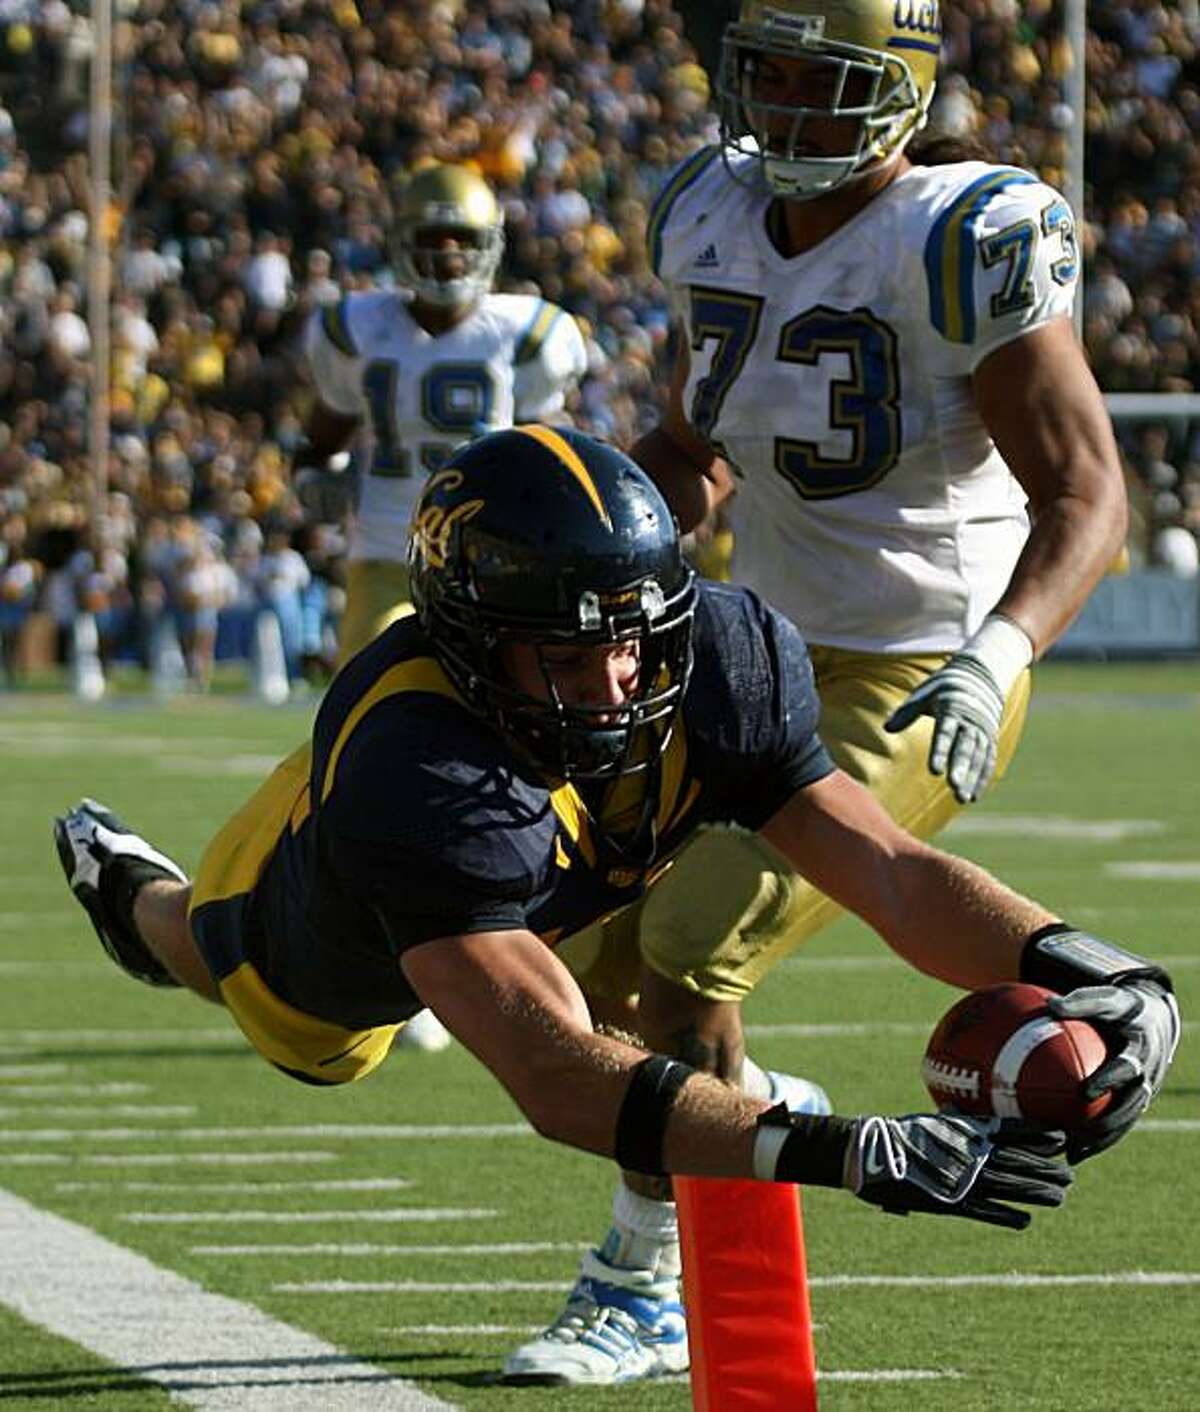 California linebacker Michael Mohamed dives into the end zone after intercepting UCLA pass from Kevin Craft in 4th quarter action. Cal defeated UCLA 41-20 in Berkeley Calif. By Lance Iversen